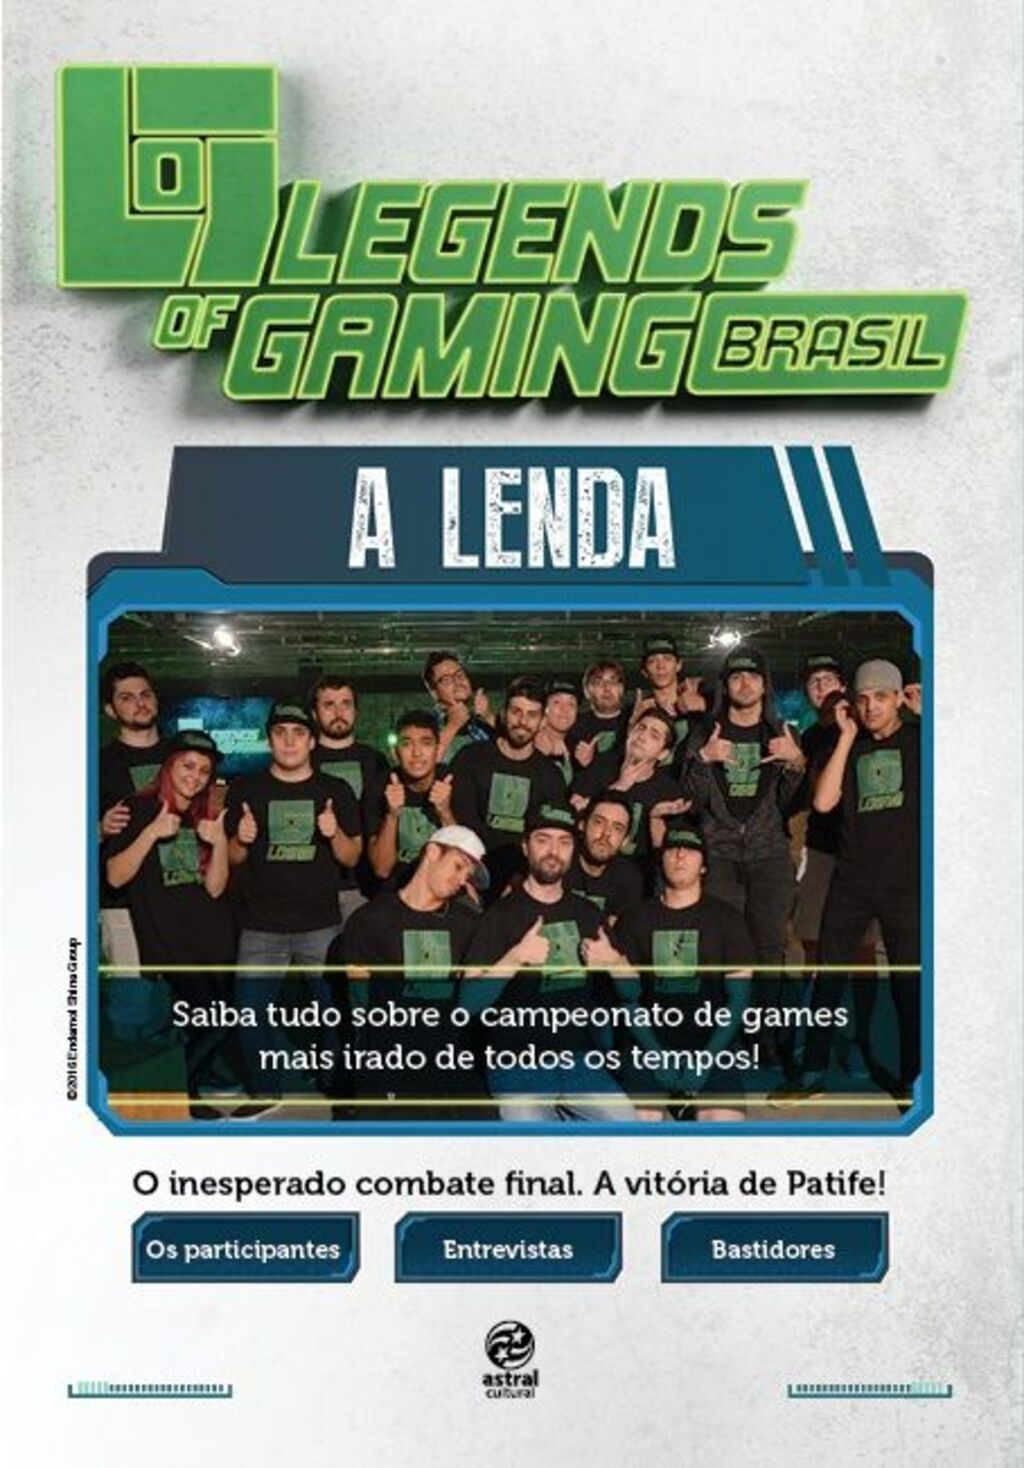 Legends of gaming Brasil - A lenda